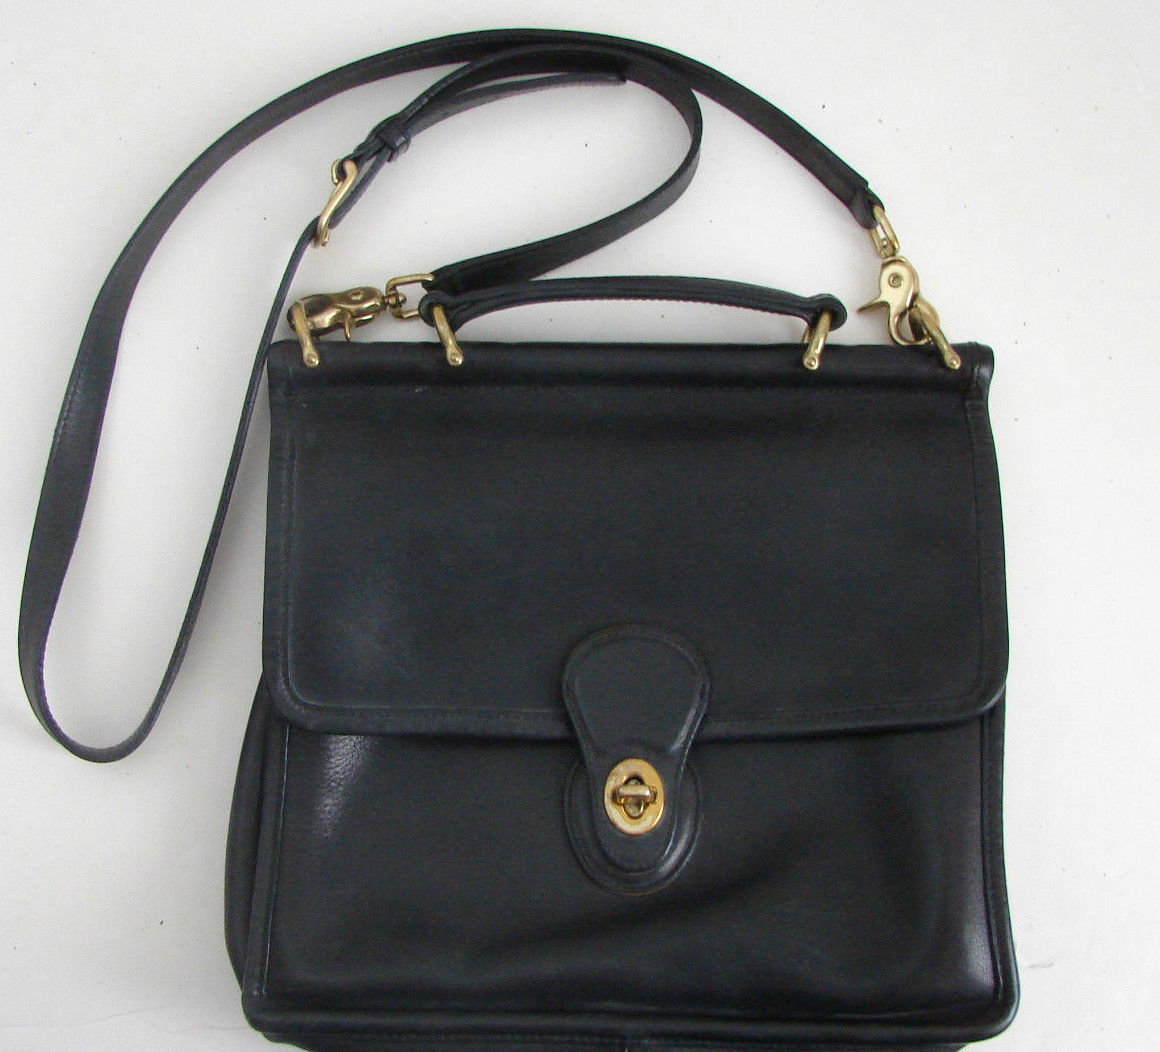 COACH Vintage Black Leather Cross Body Messenger Bag